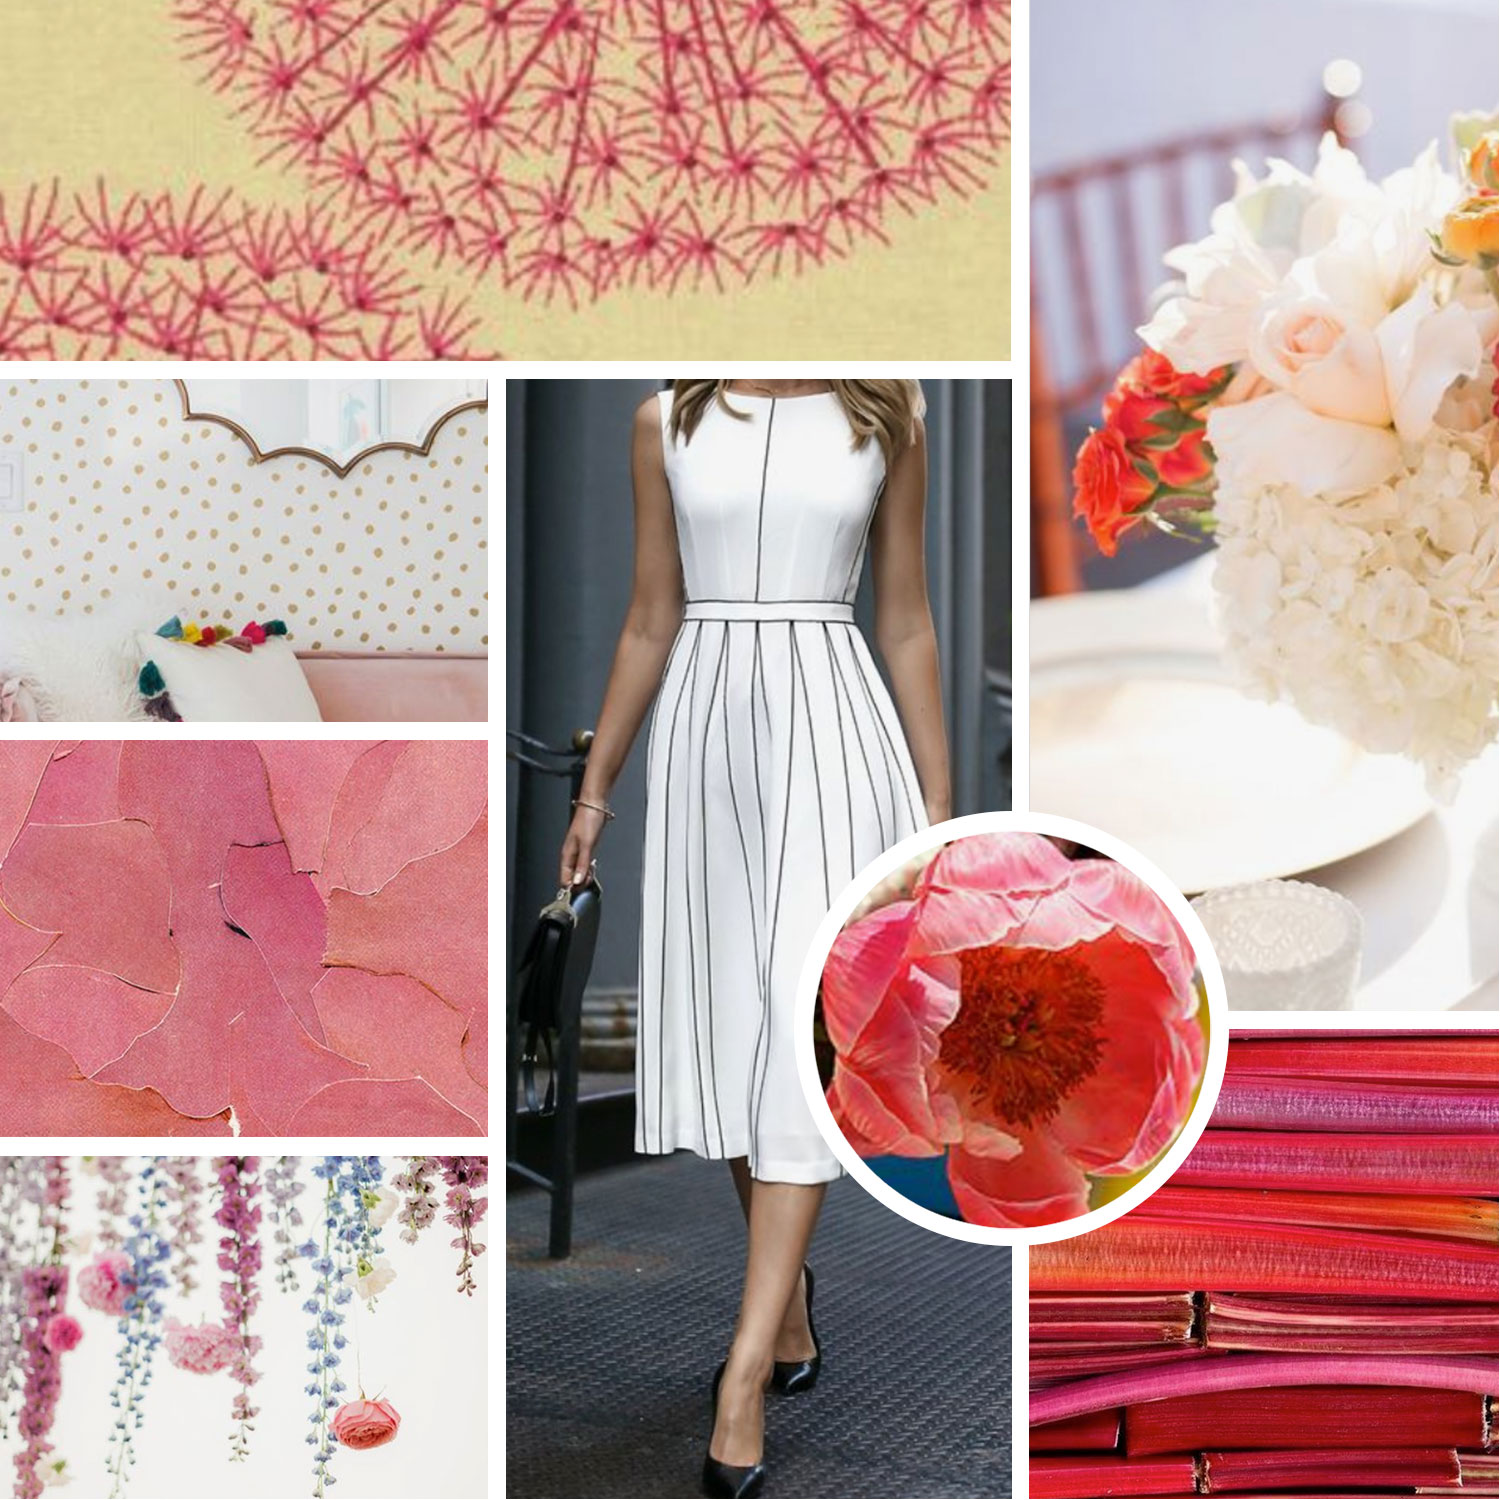 whimsical mood board